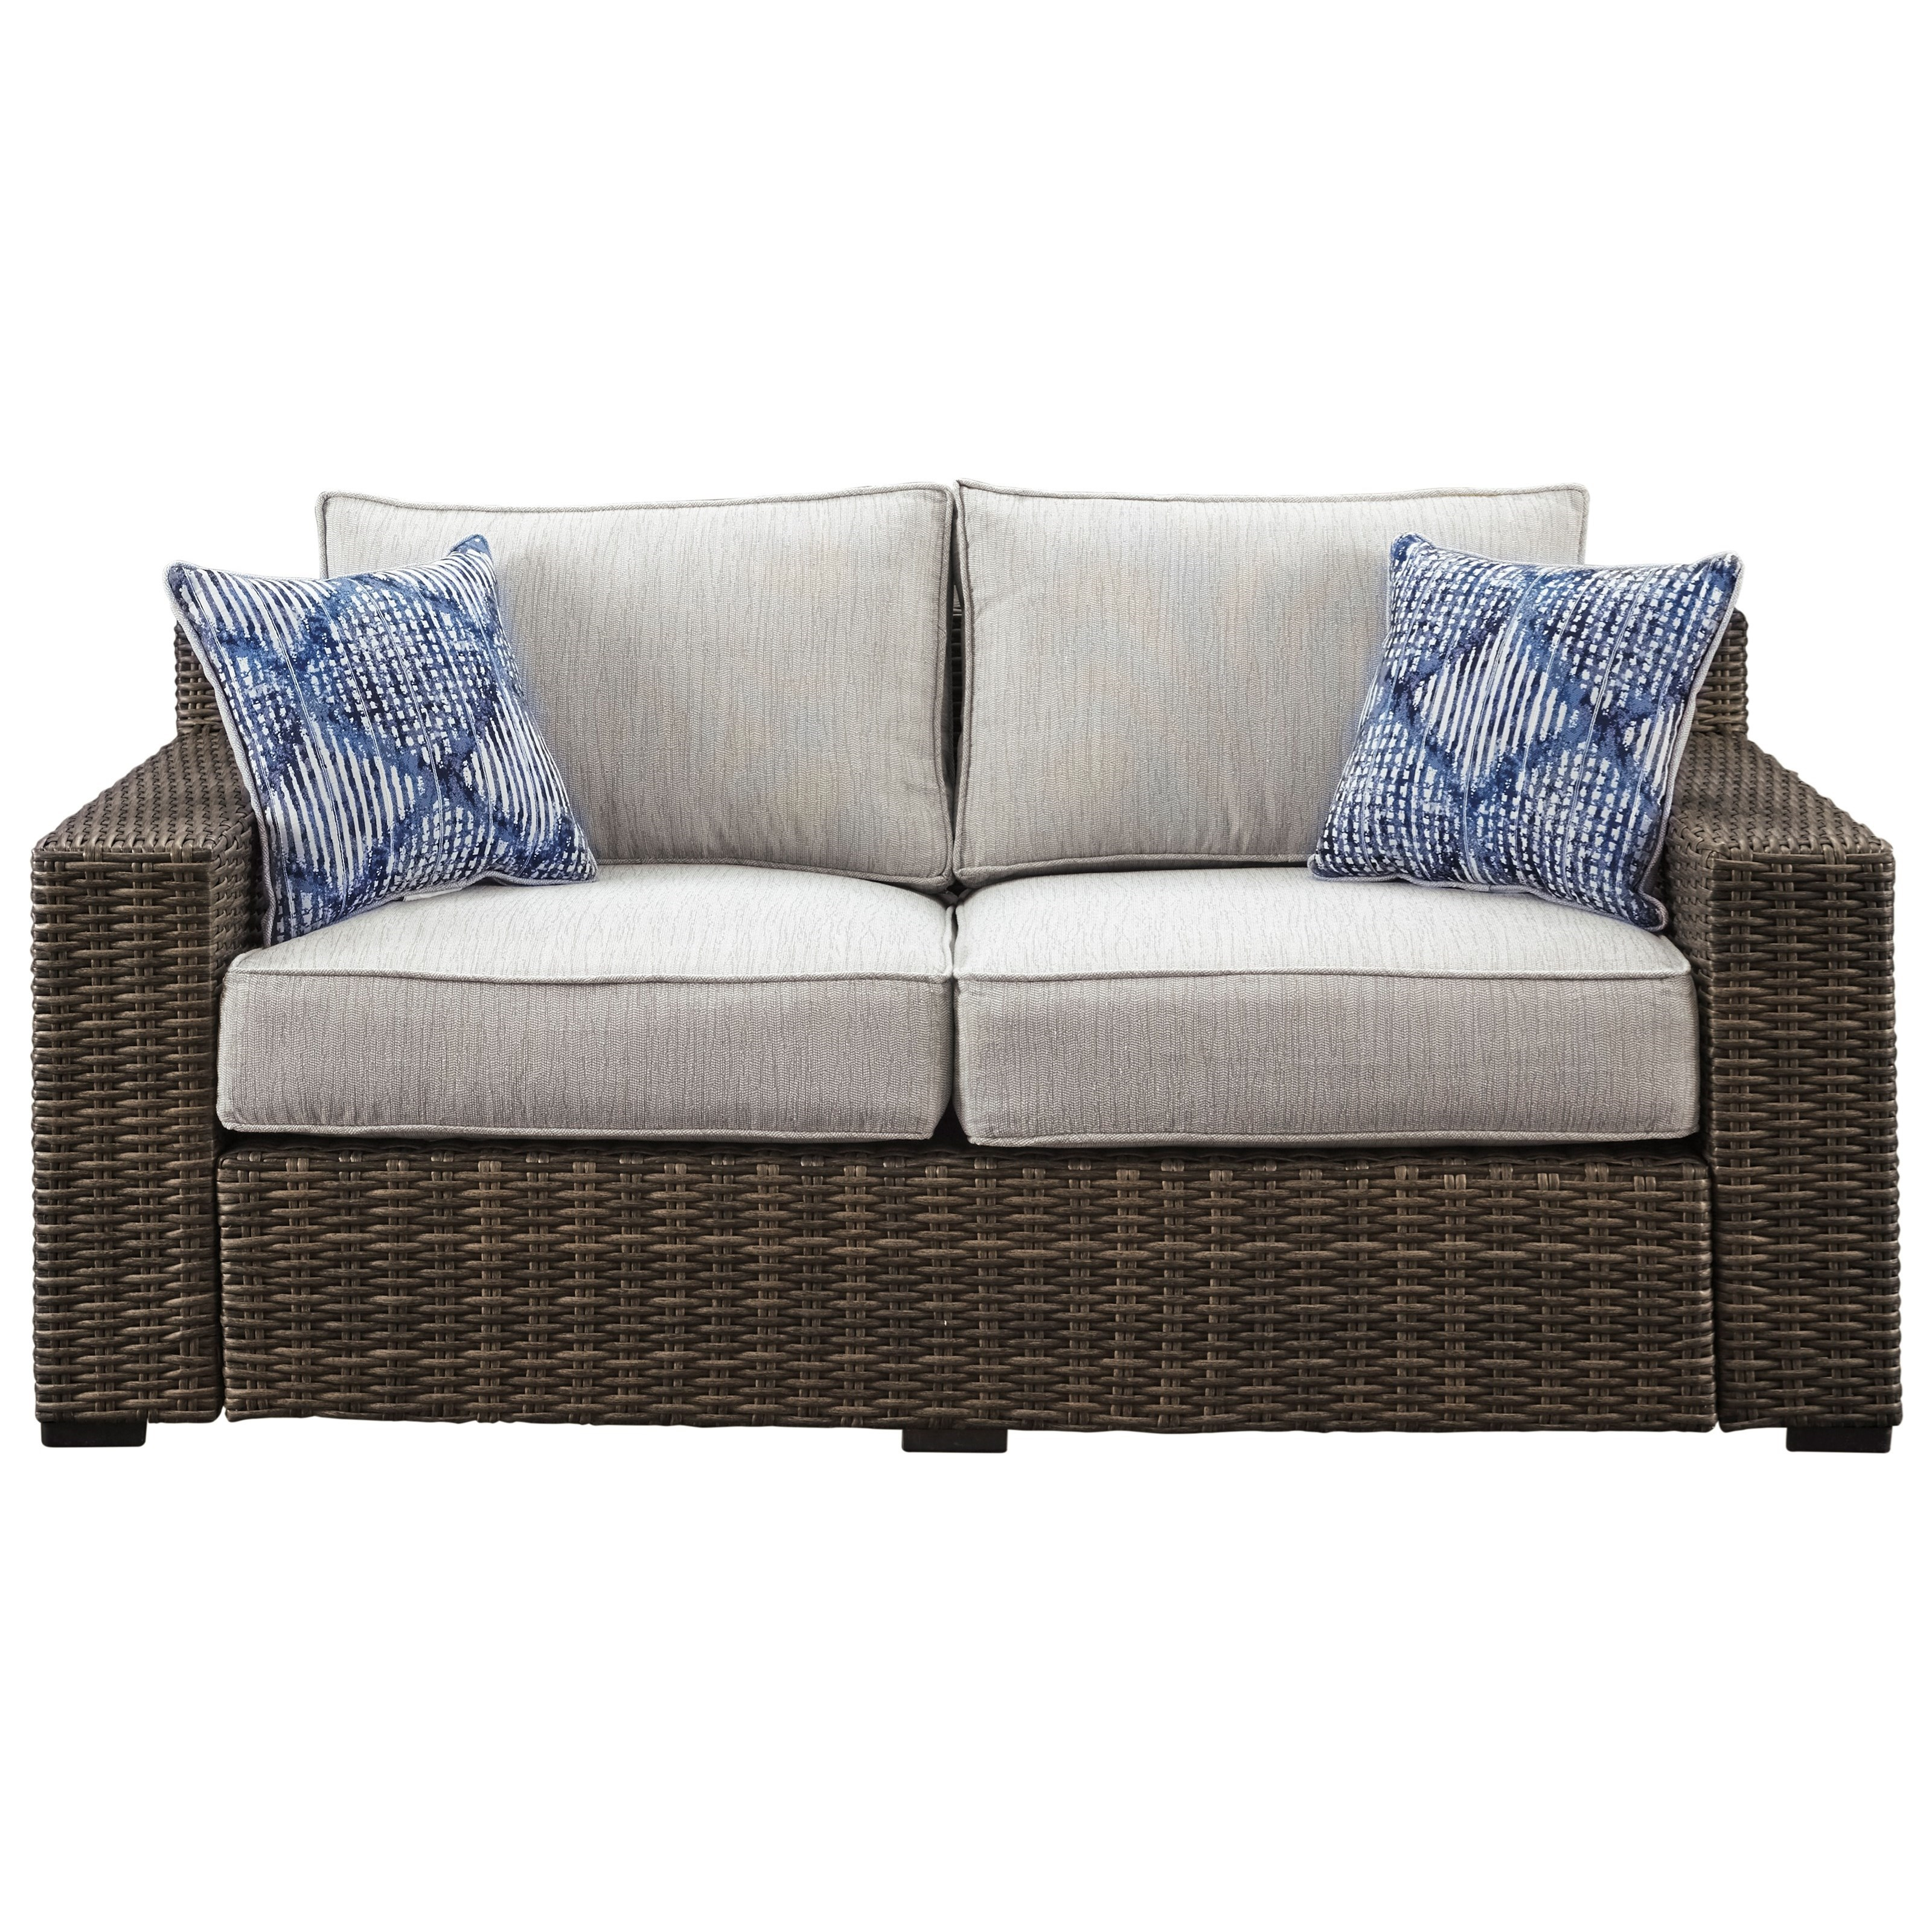 Signature Design by Ashley Alta Grande Loveseat with Cushion - Item Number: P782-835